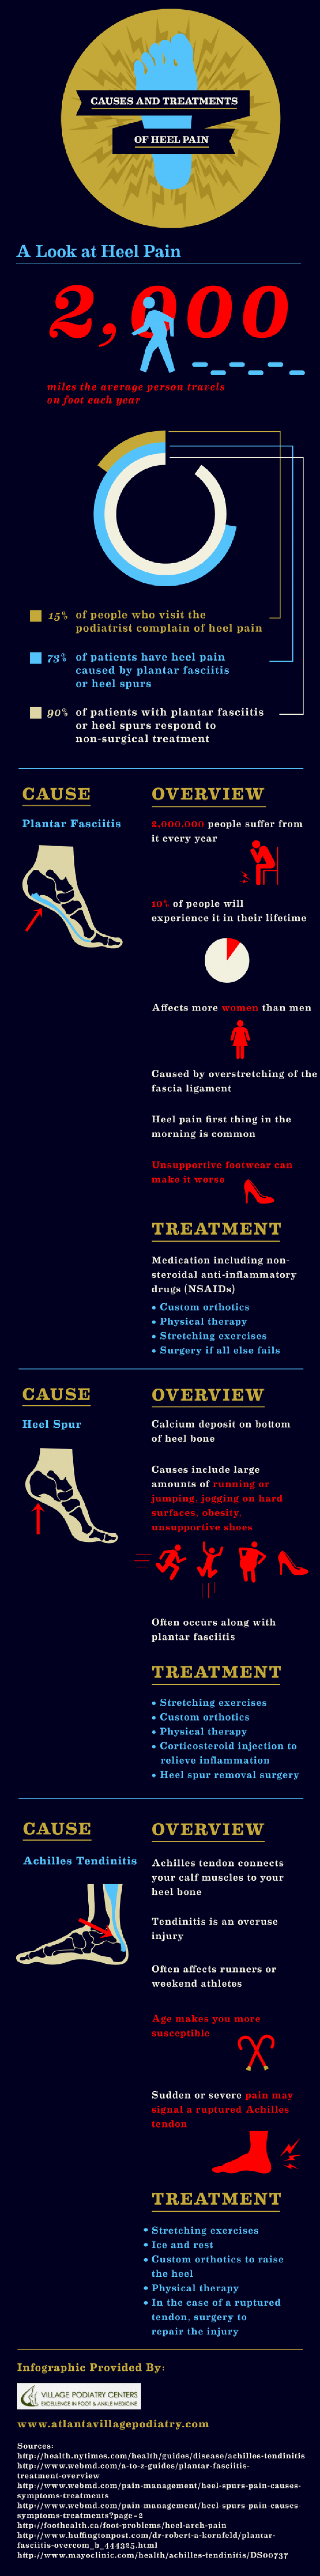 Causes and Treatments of Heel Pain Infographic